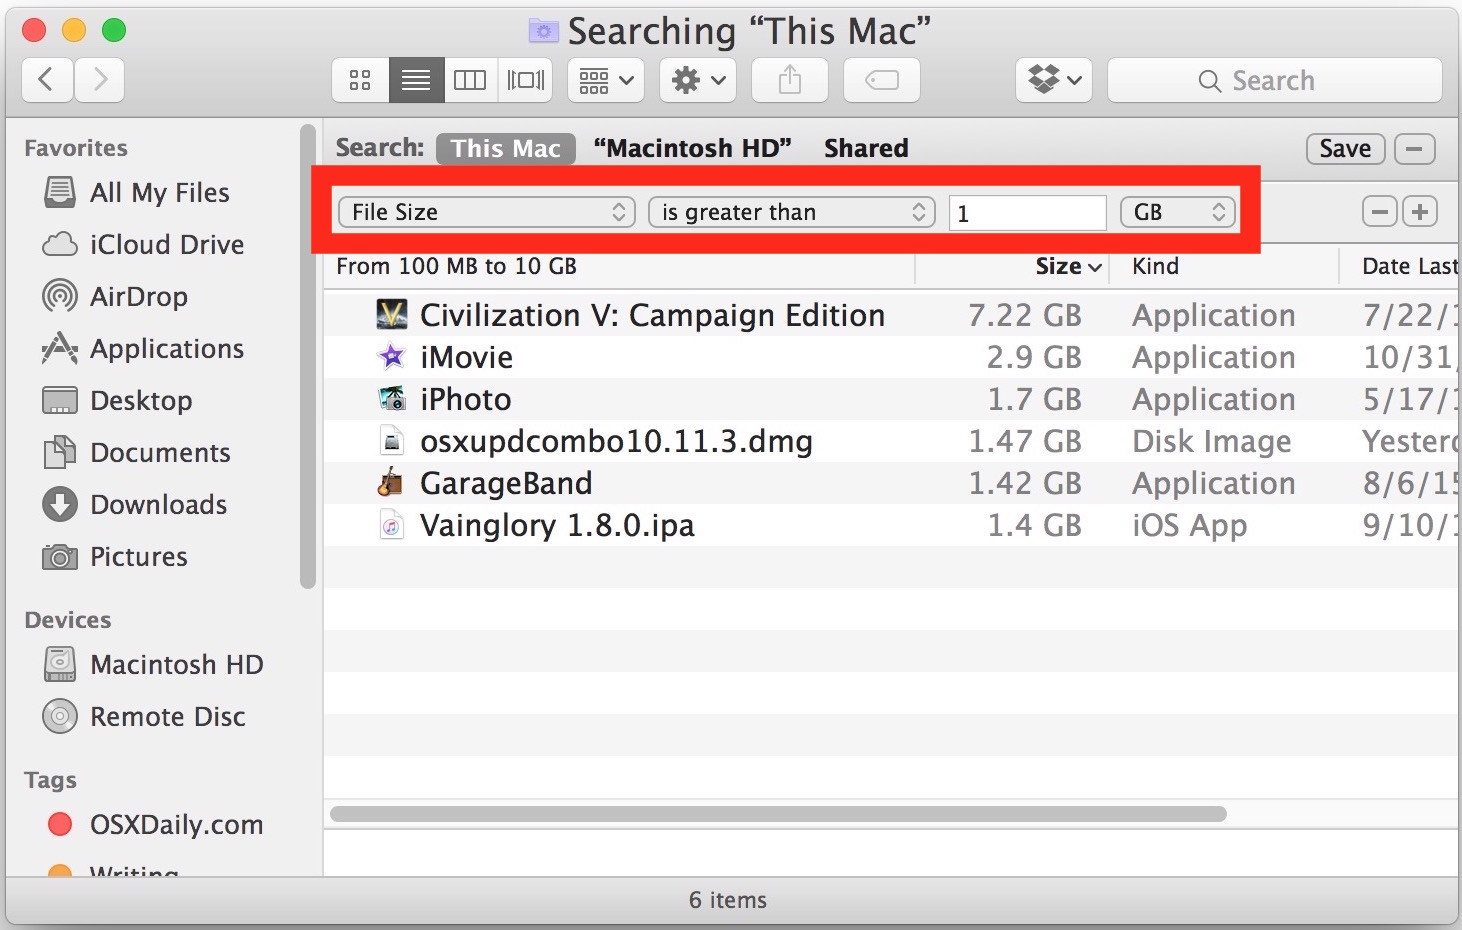 Finding large file size files in Mac OS X search can help clear out startup disk that is full